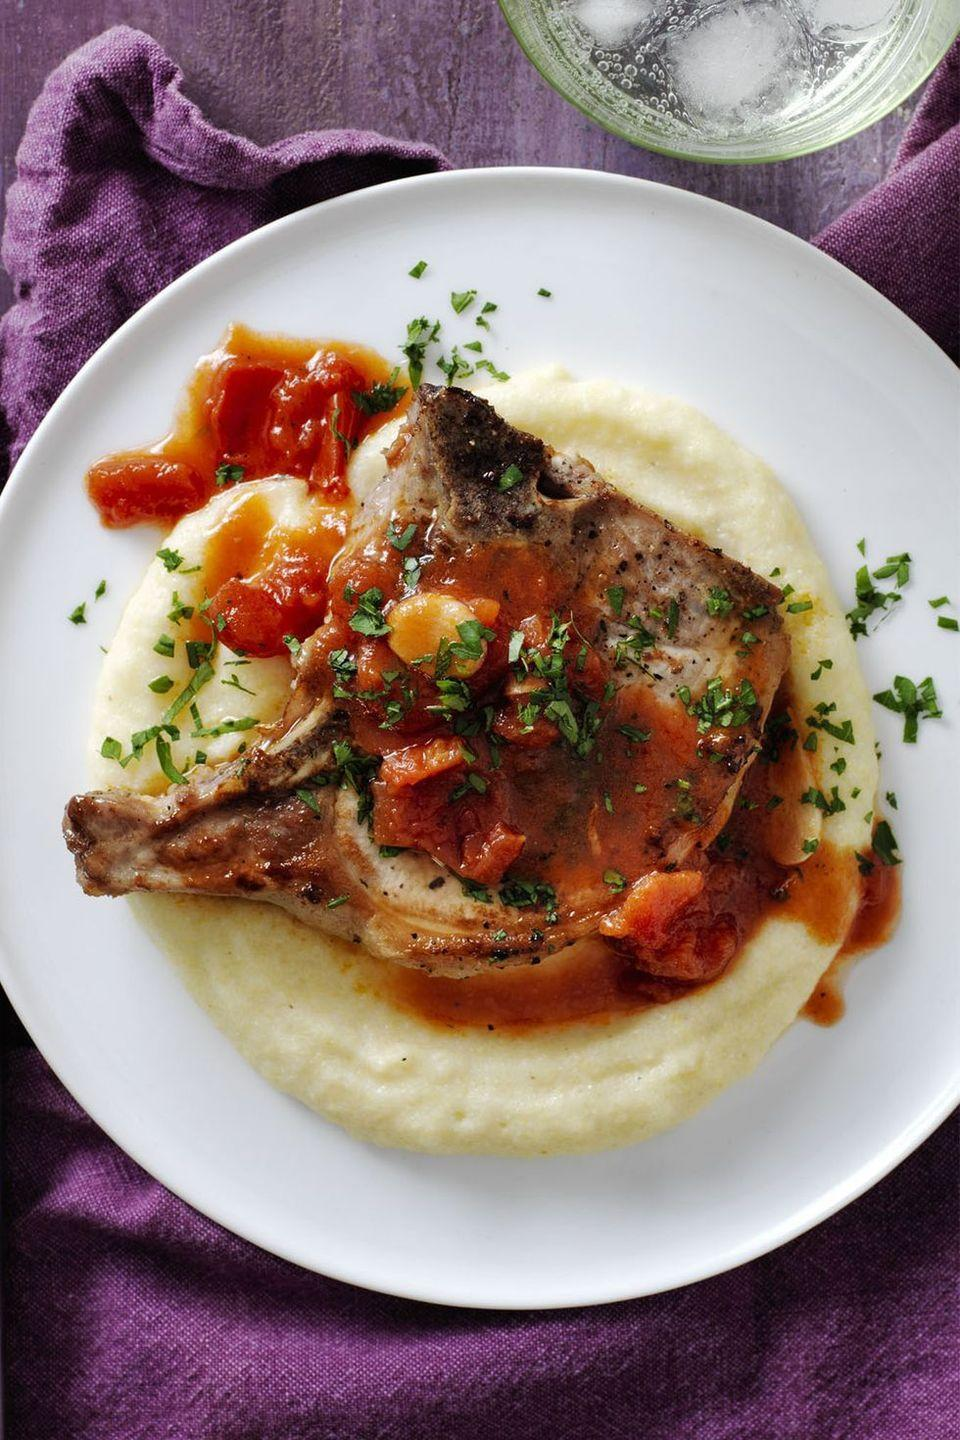 """<p>If you're looking for a hearty, savory dish that you can put together in almost no time at all, this pork chop should be your go-to.</p><p><em><a href=""""https://www.womansday.com/food-recipes/recipes/a57909/pork-chops-parmesan-polenta-recipe/"""" rel=""""nofollow noopener"""" target=""""_blank"""" data-ylk=""""slk:Get the Pork Chops and Garlicky Tomatoes with Parmesan Polenta recipe."""" class=""""link rapid-noclick-resp"""">Get the Pork Chops and Garlicky Tomatoes with Parmesan Polenta recipe.</a></em></p>"""